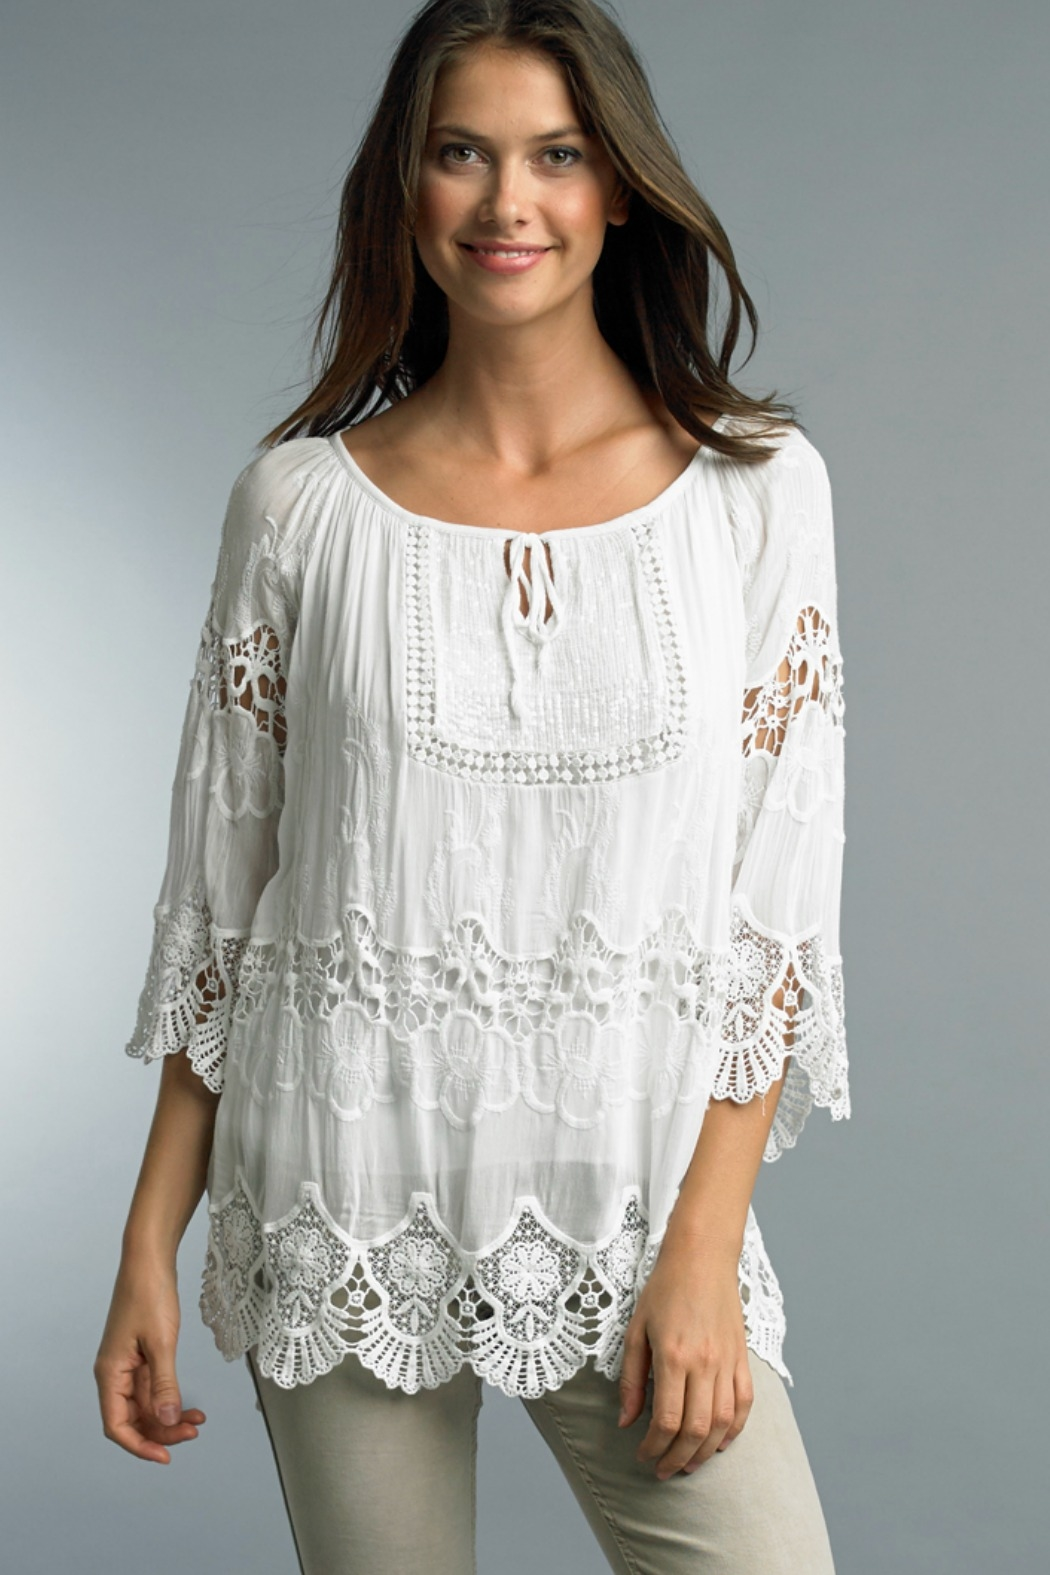 Tempo Paris Eyelet Tie Neck 3/4 Top - Main Image